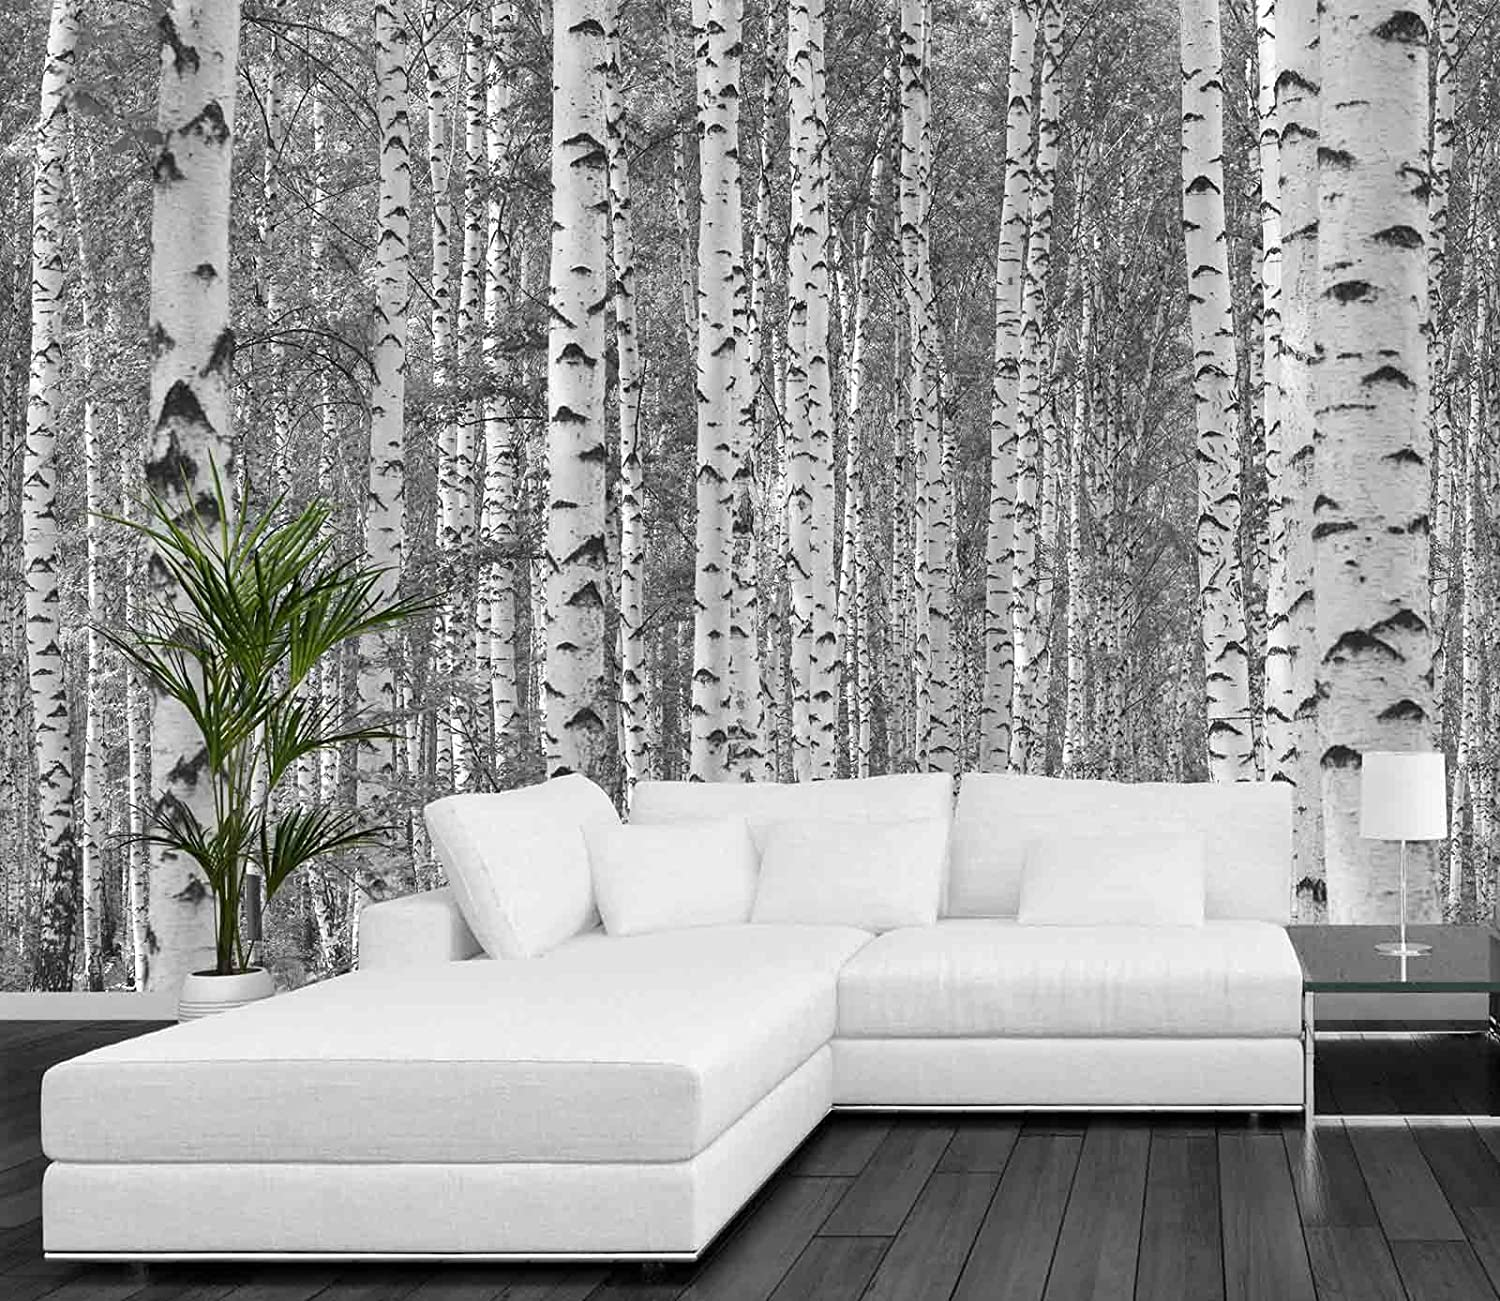 12 Feet wide by 8 Feet high Prepasted robust wallpaper mural from